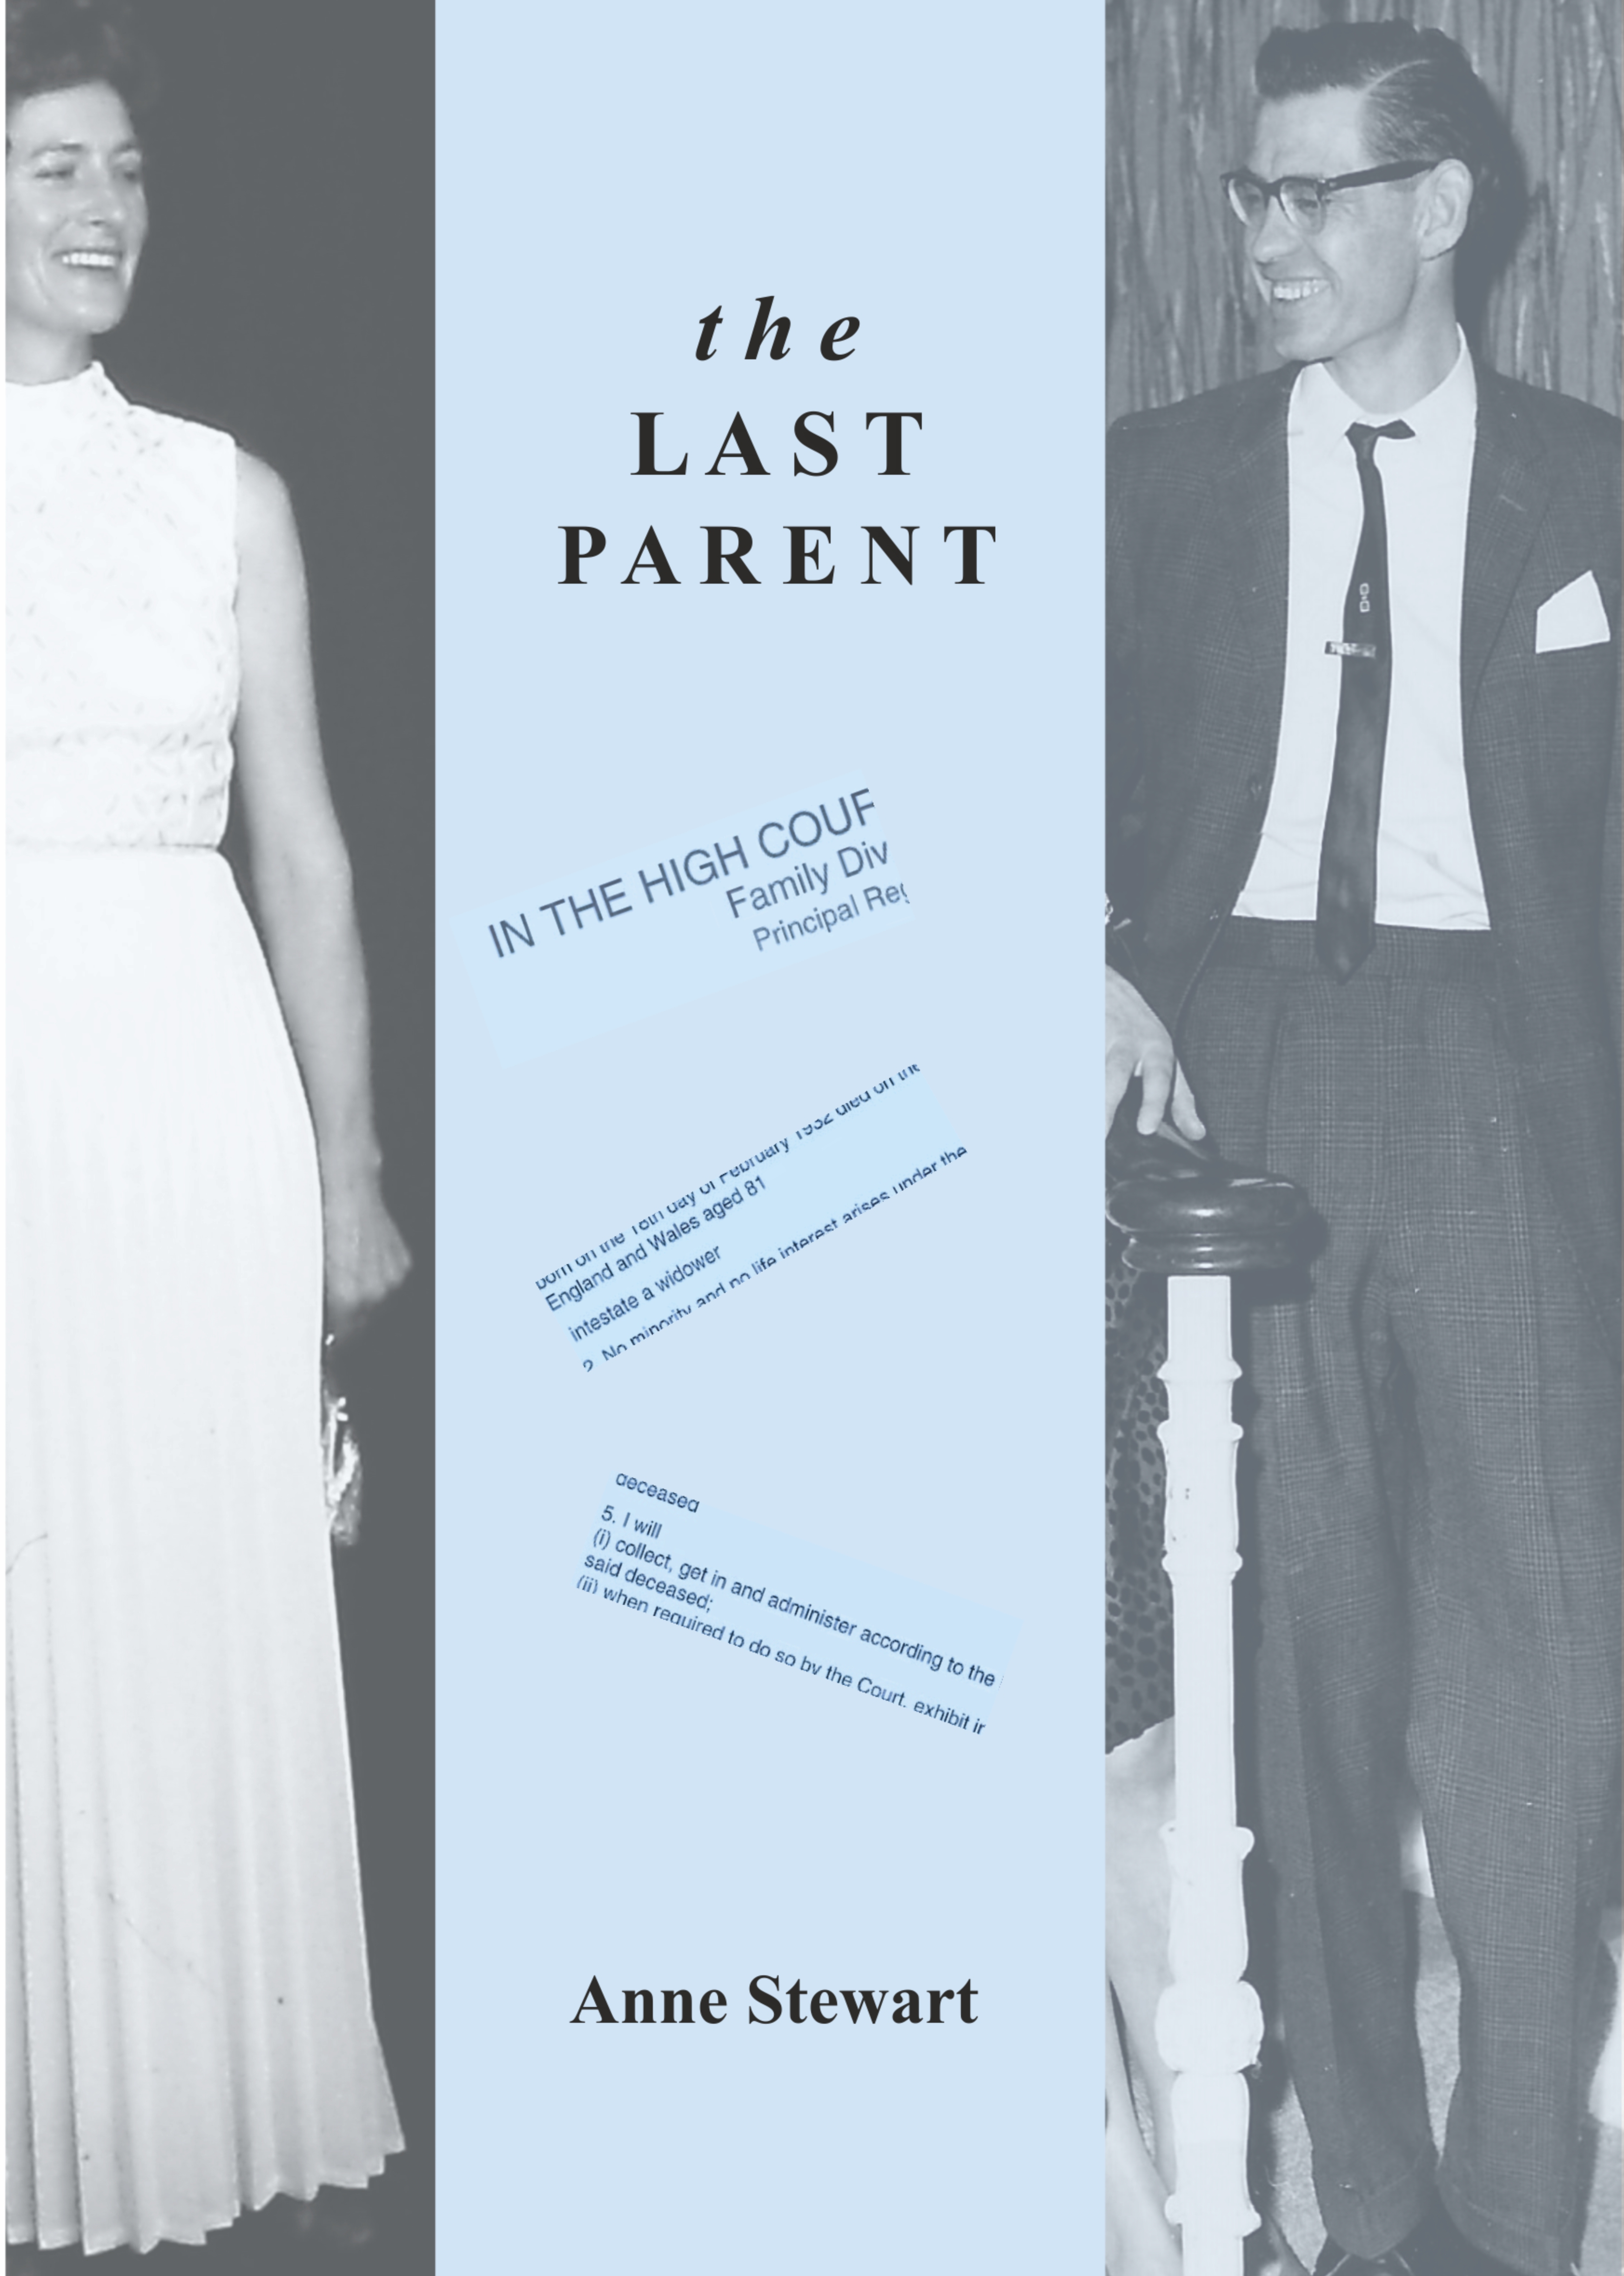 Image: The Last Parent cover